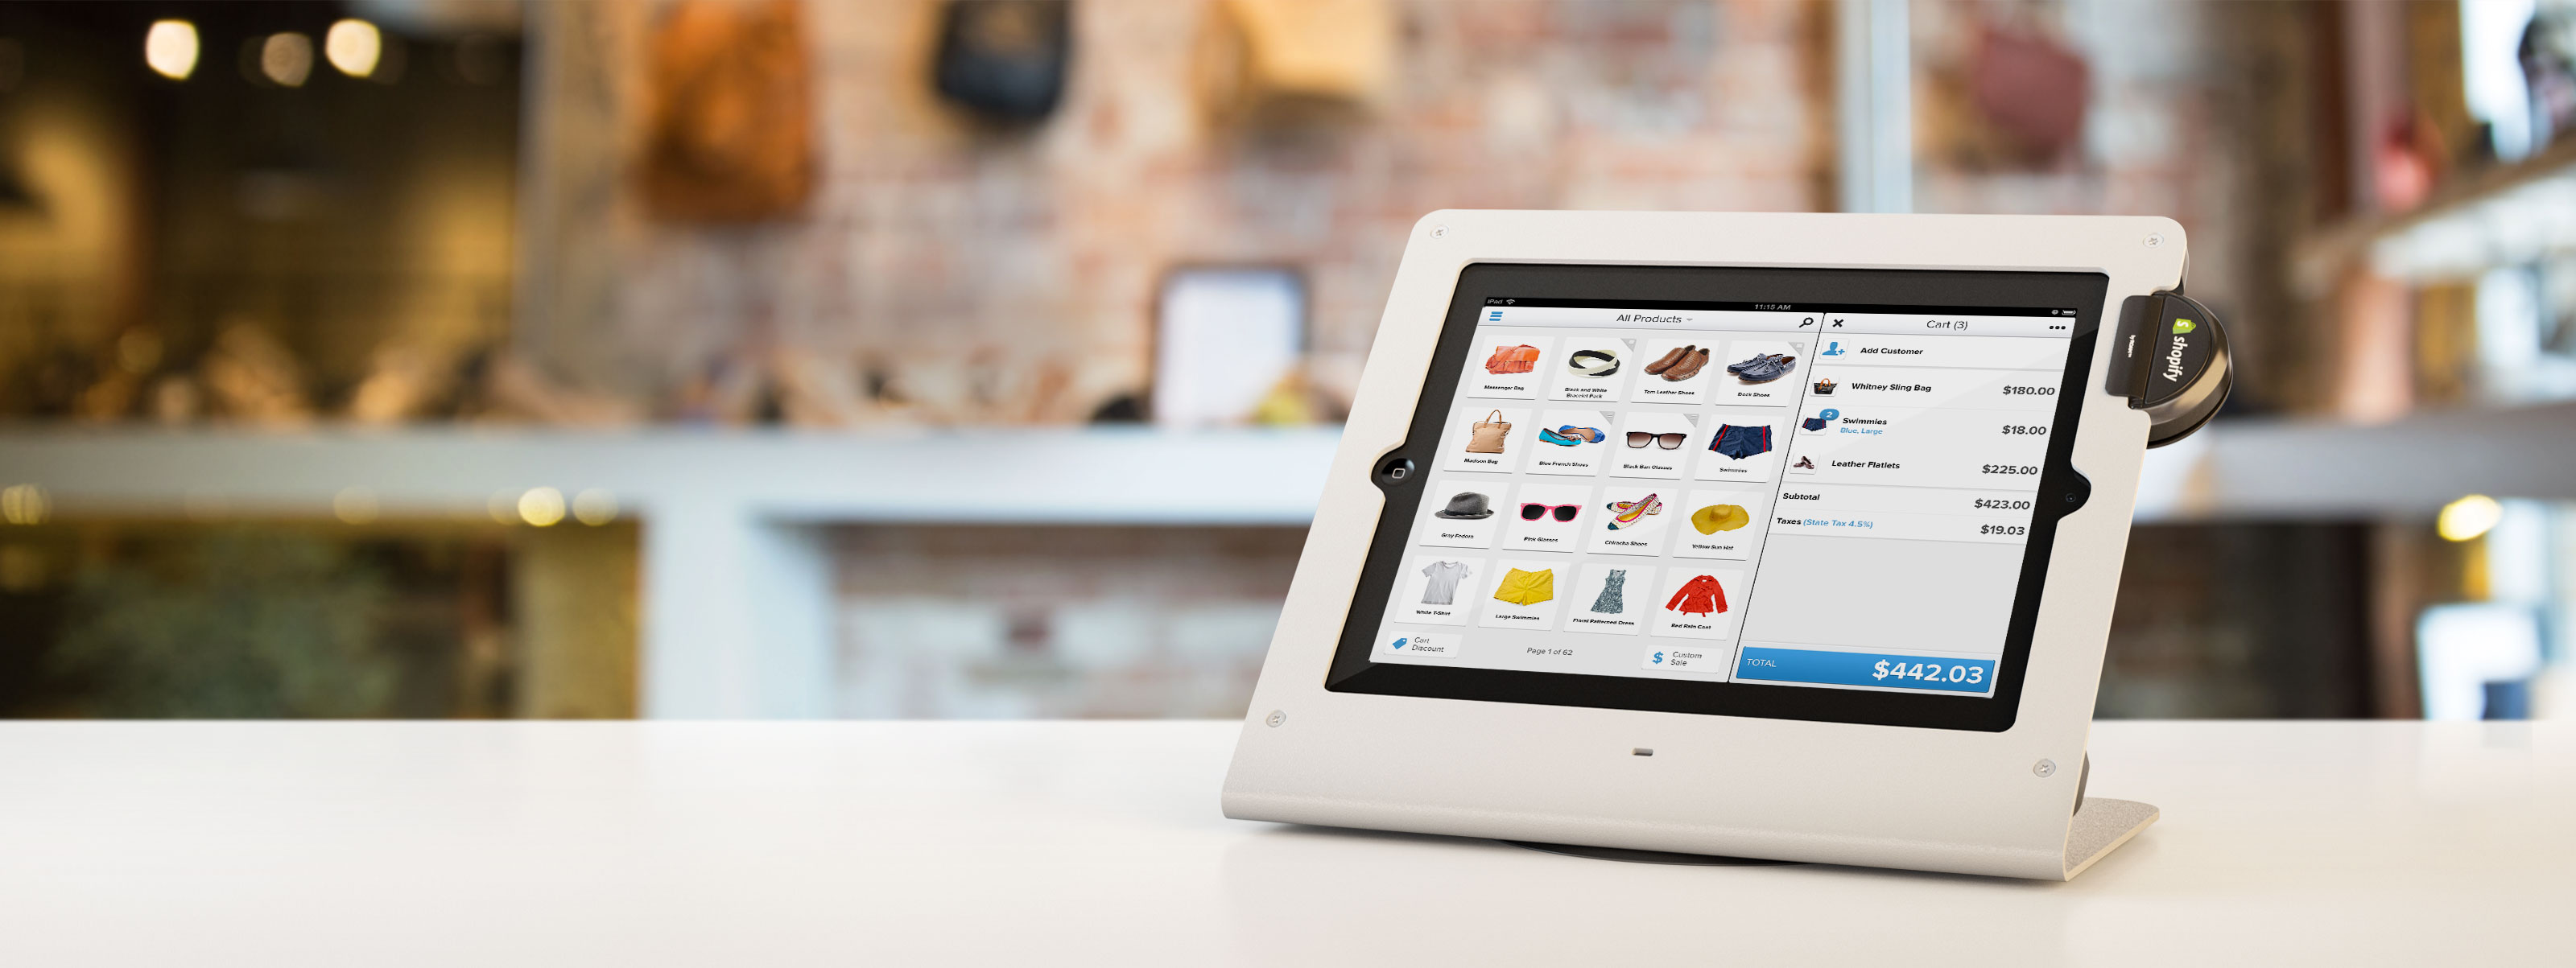 Shopify Takes On Square With Its Own Ipad Based Pos System